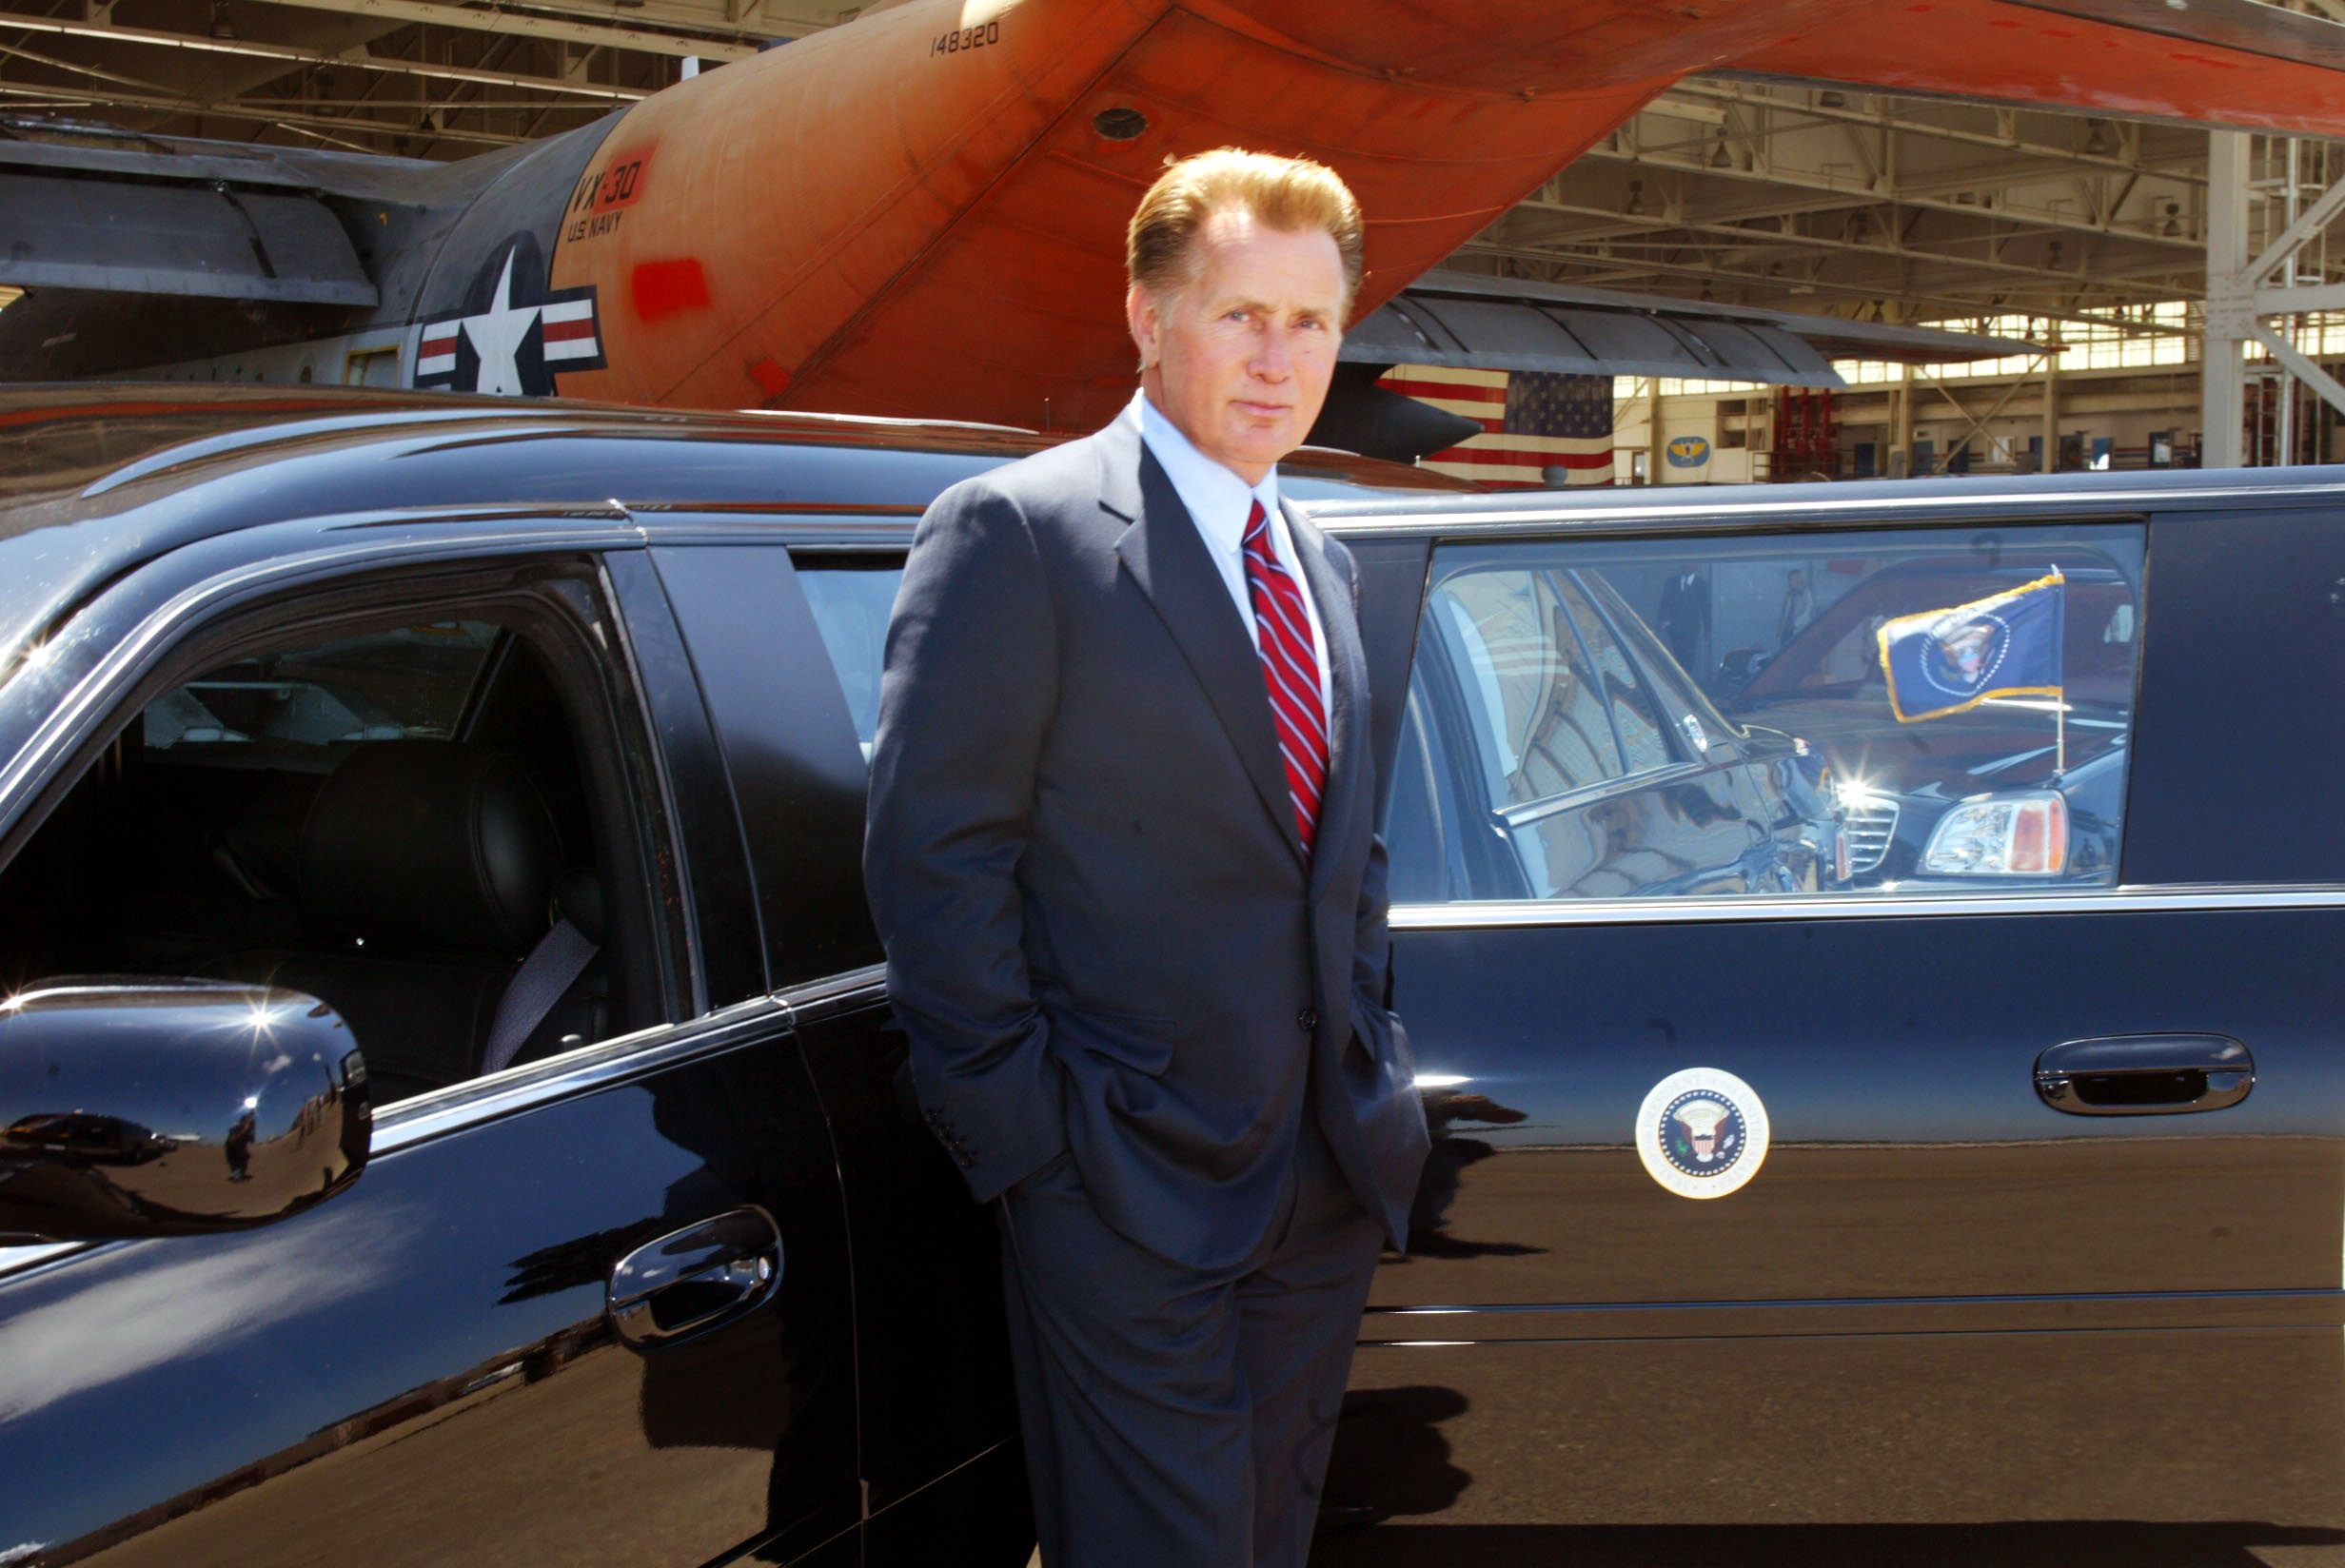 Martin Sheen as President Josiah Bartlet standing at his limo with the presidential seal